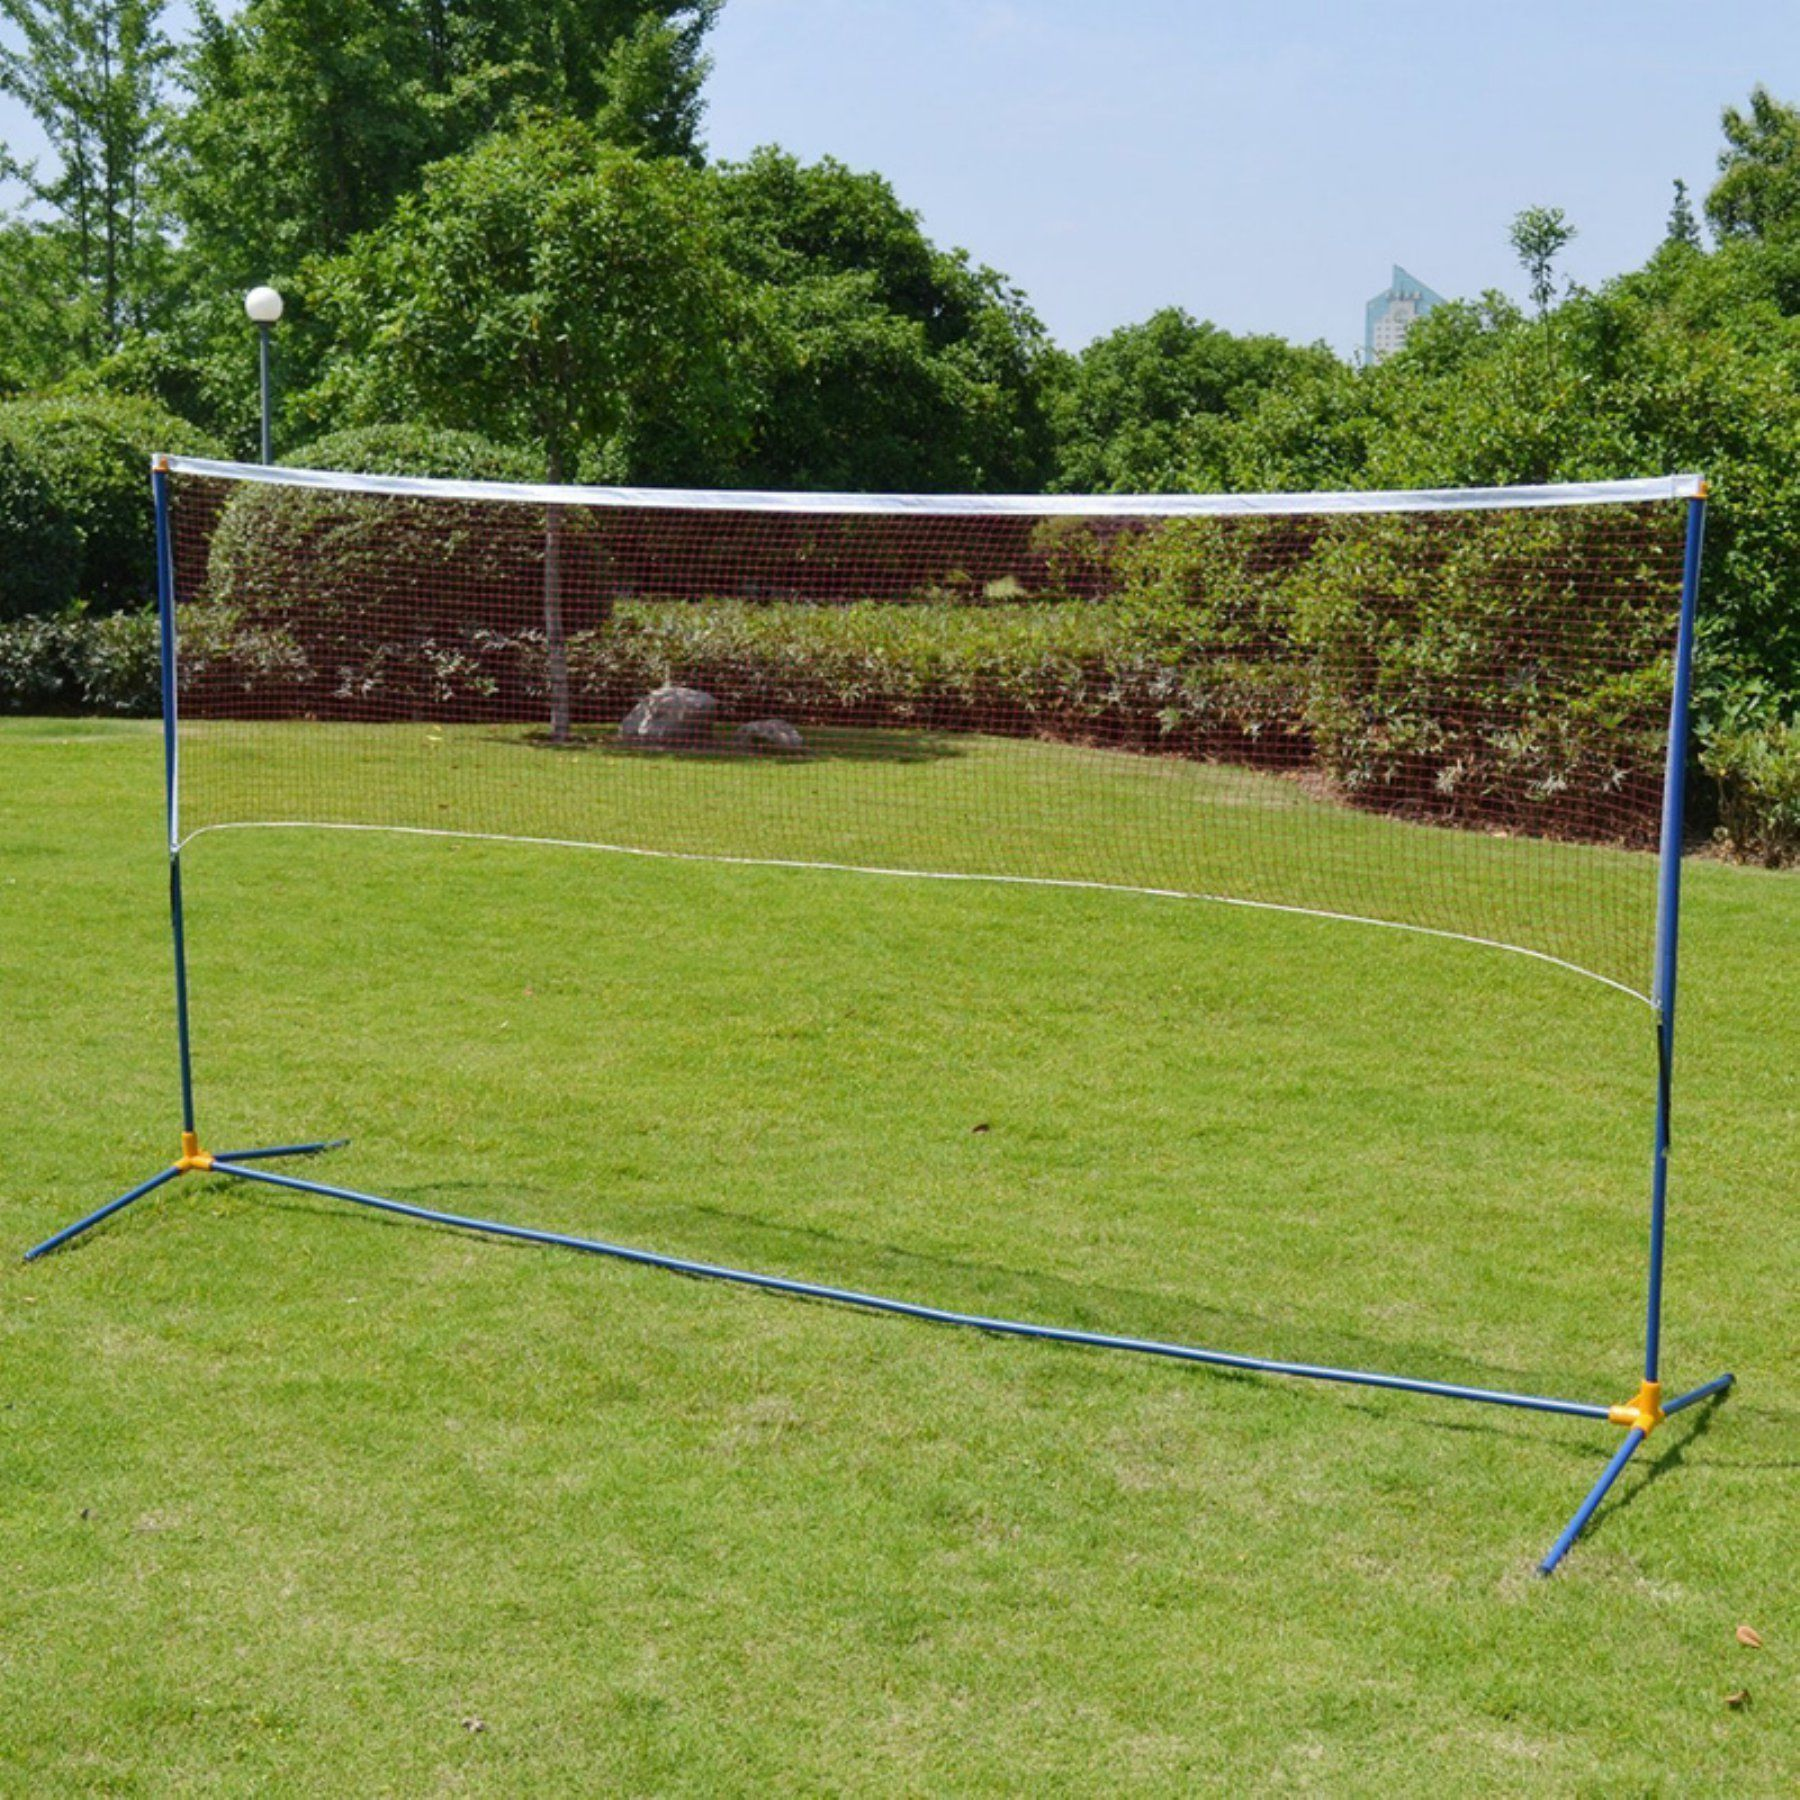 Sunrise Portable Outdoor Volleyball Training Net With Carrying Bag Jb 518 Badminton Set Badminton Volleyball